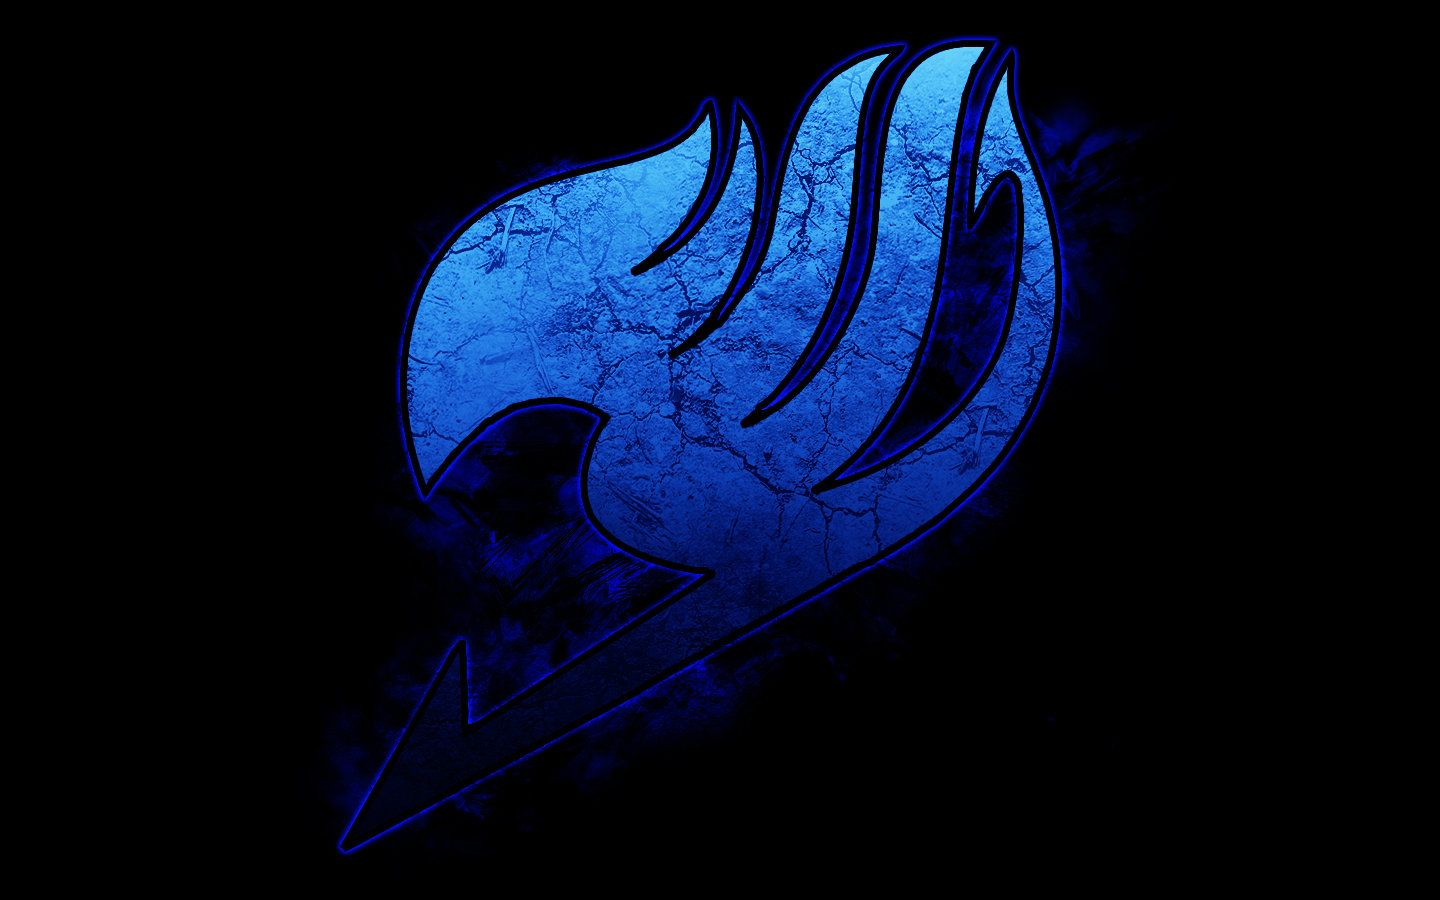 Fairy tail emblem fairy tail pinterest fairy anime and fairy tail emblem biocorpaavc Image collections